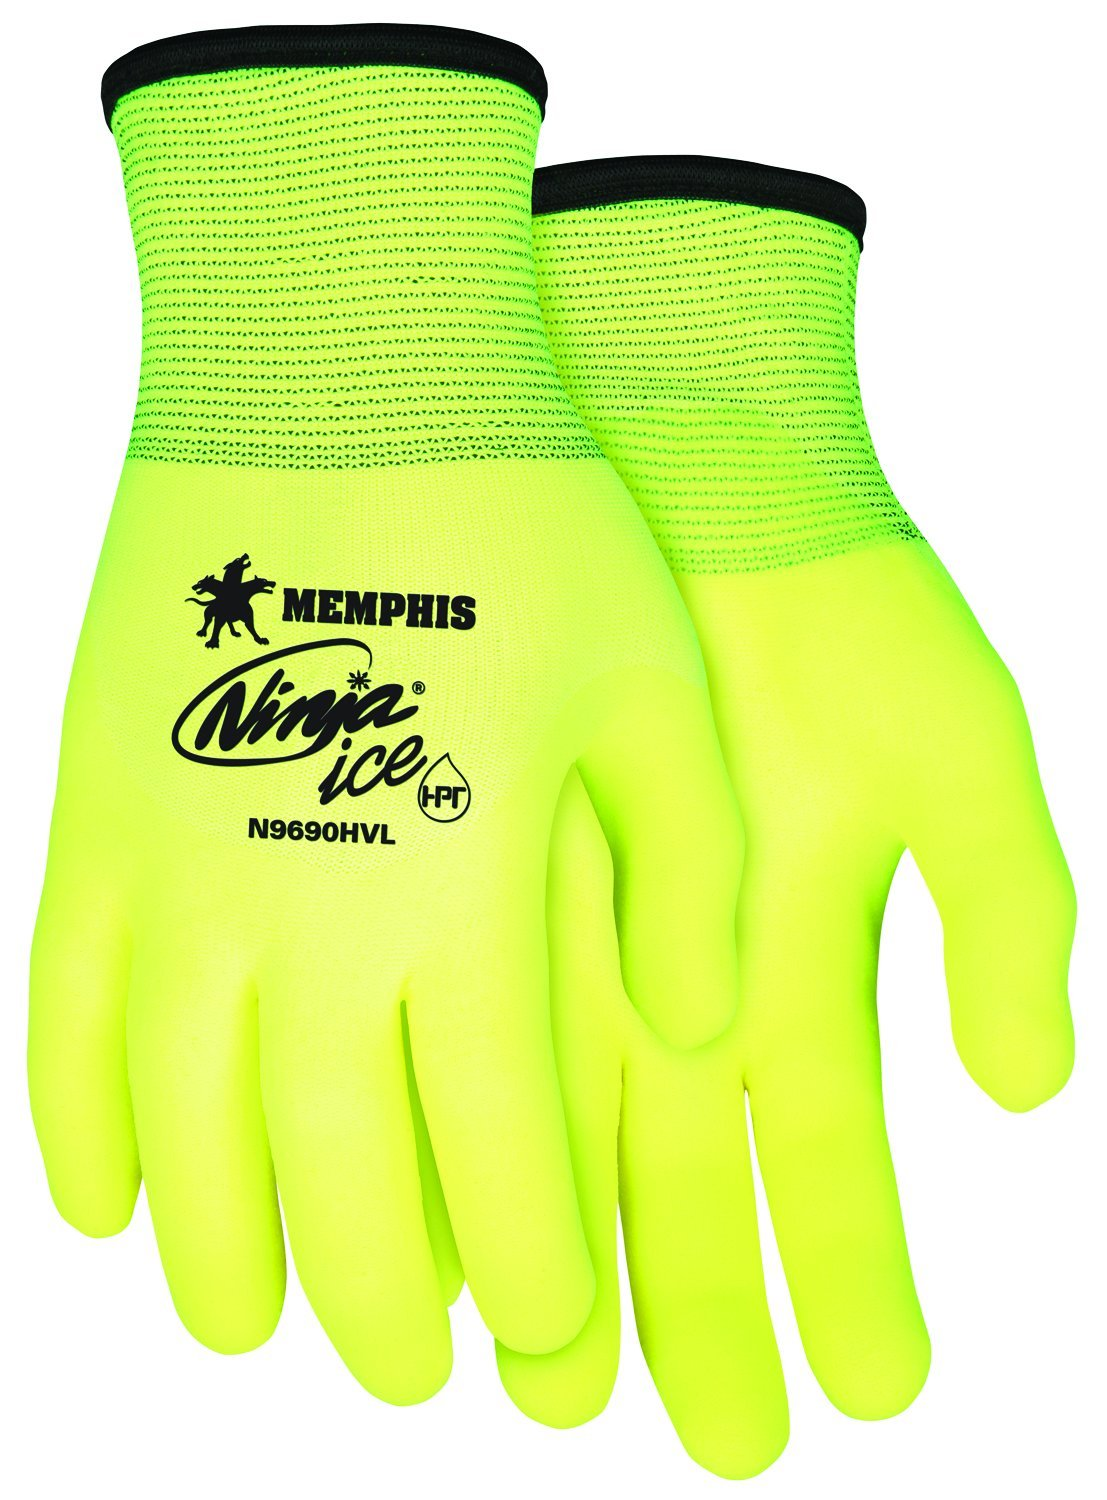 Amazon.com: Memphis Glove N9690HVL Ninja Ice High Visibility Nylon Liner  Double Layer Gloves With HPT Coating, Lemon Yellow, Large, 1 Pair: Home  Improvement